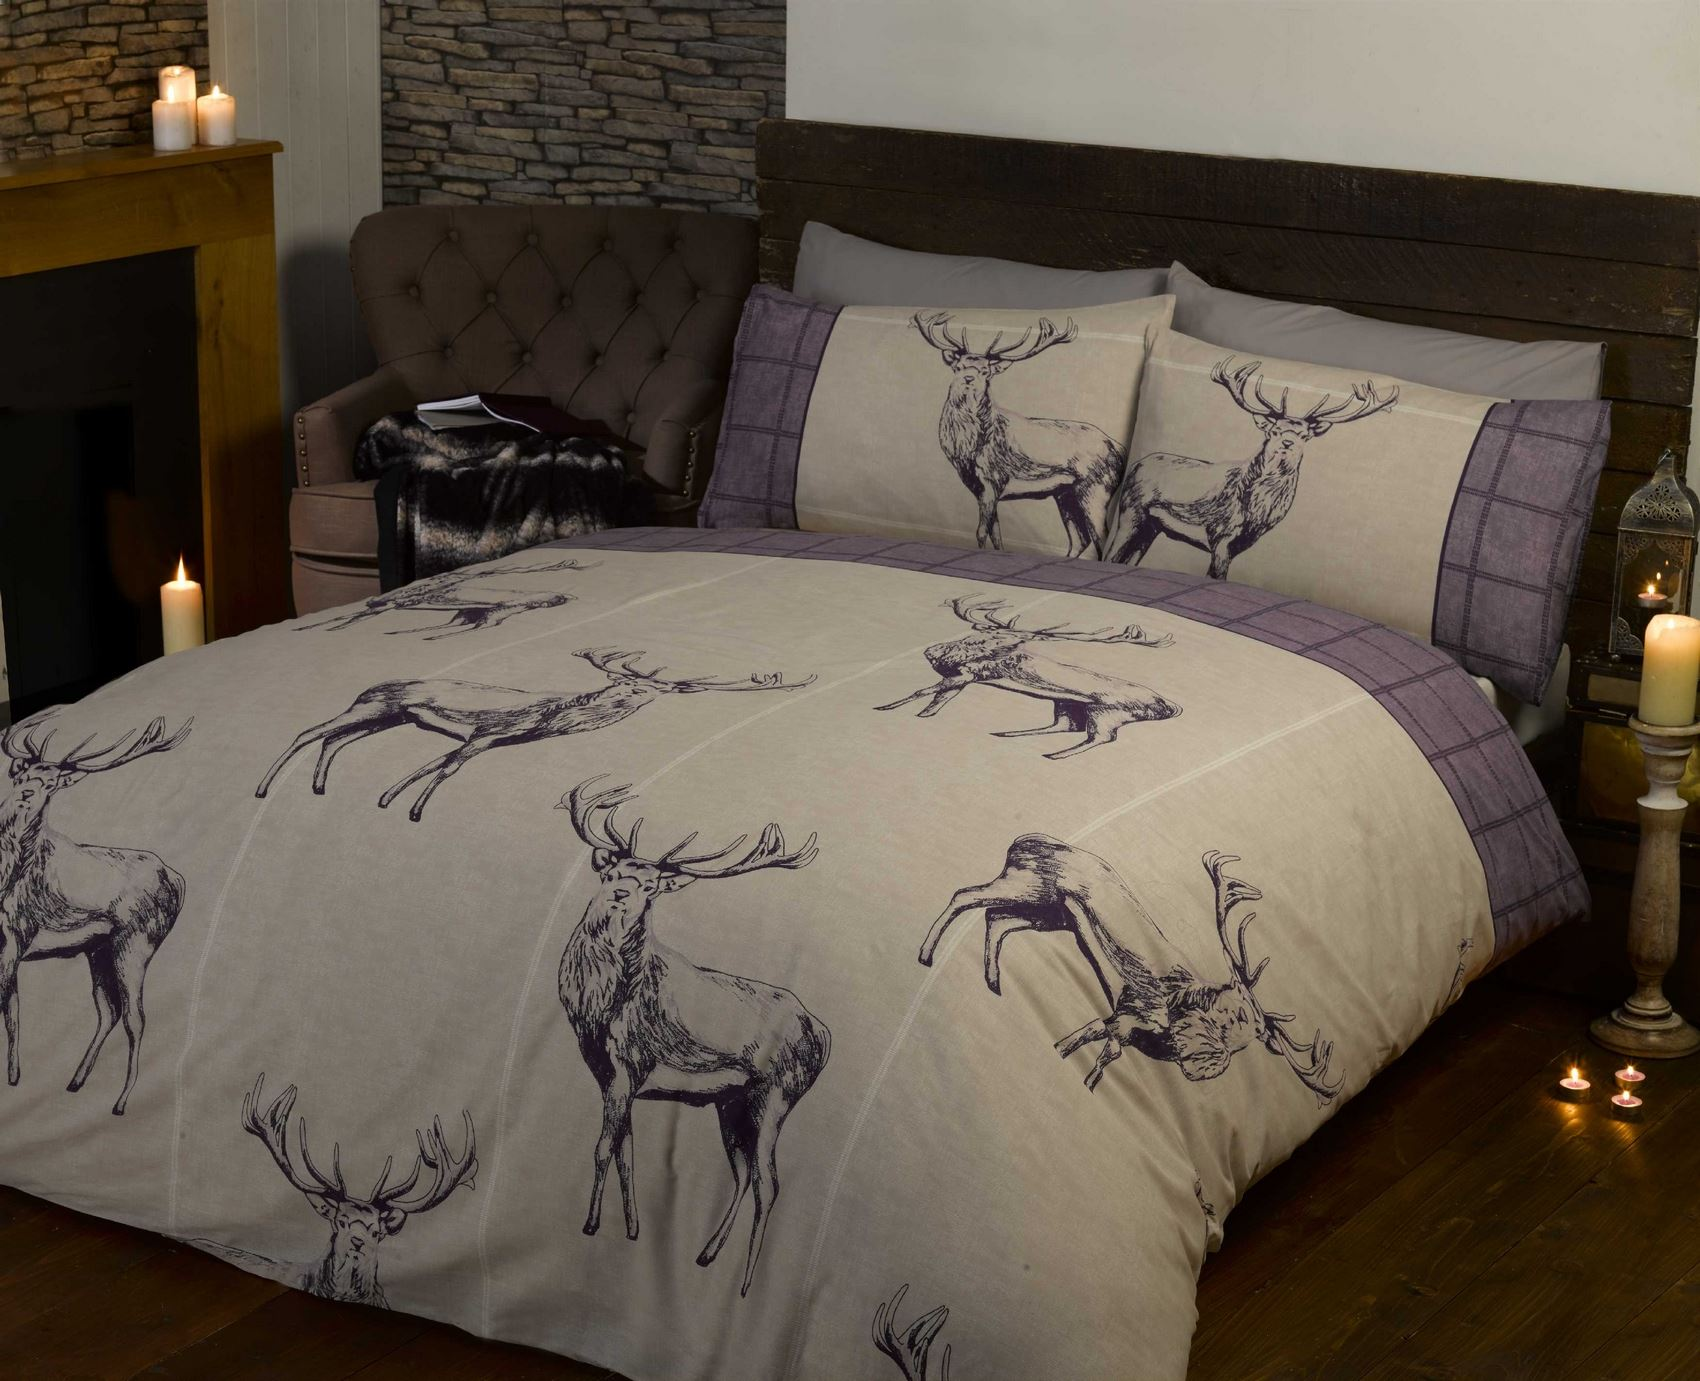 King Single Doona Cover Stag Duvet Cover And Pillowcase Quilt Cover Bedding Bed Sets